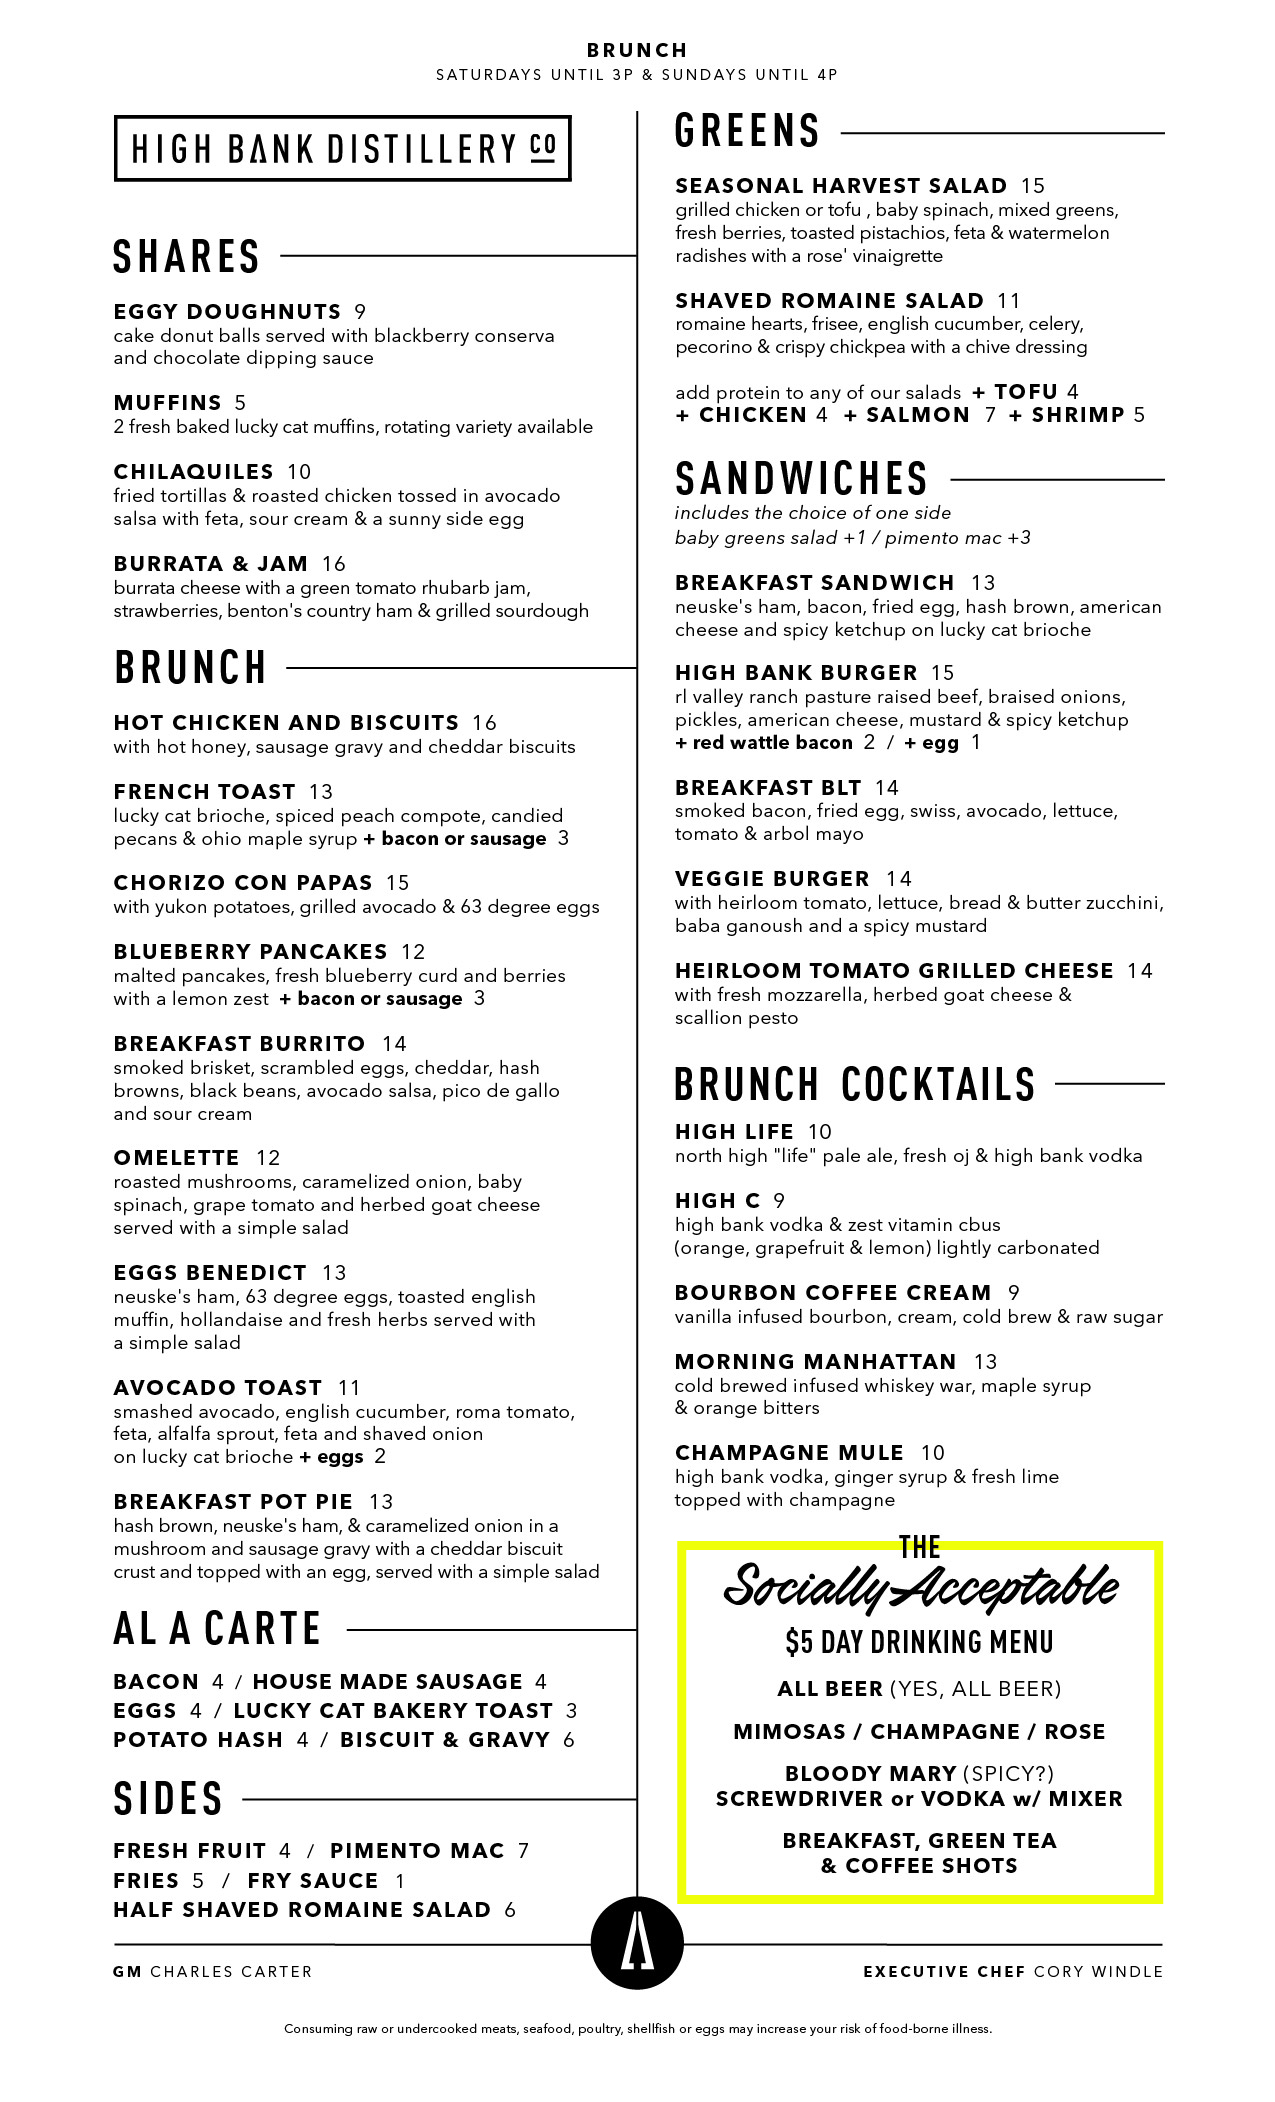 HBD-Brunch Menu-20190329-01.jpg